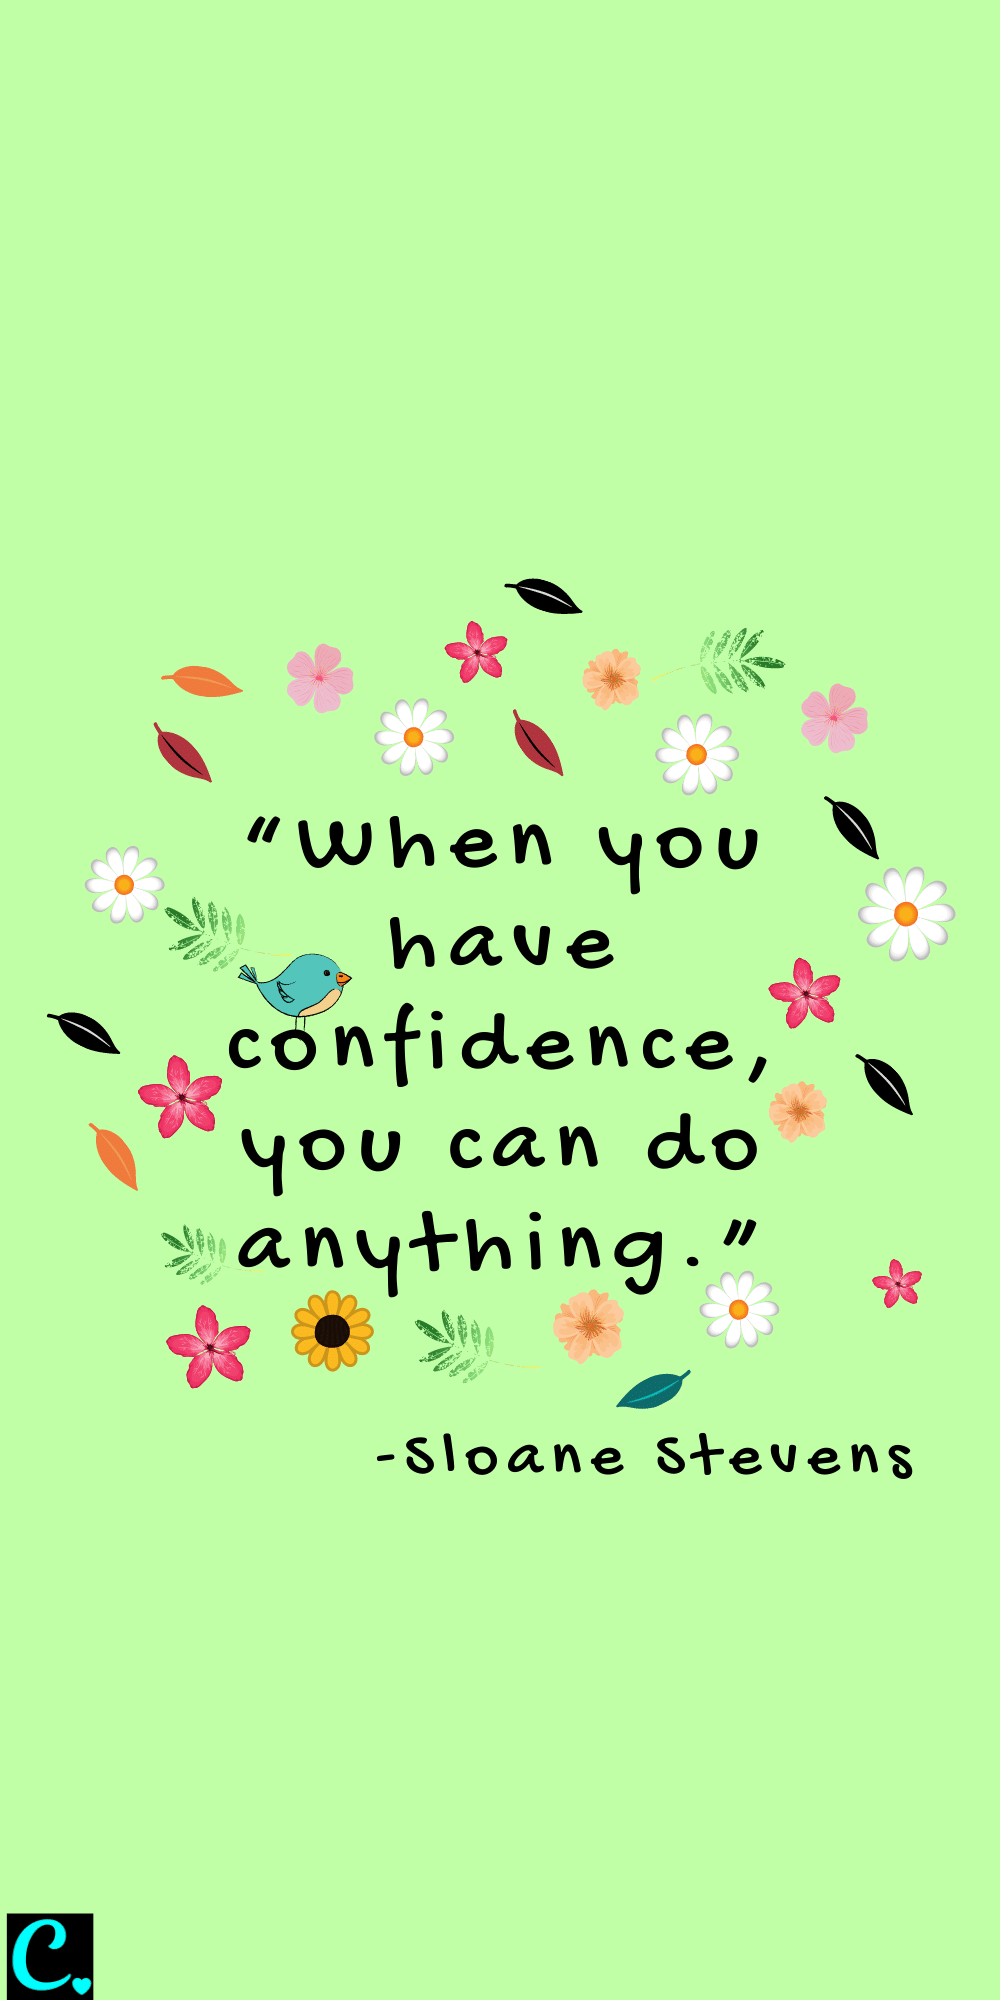 When You Have Confidence You Can Do Anything. Glow Up Quote By Sloane Stevens